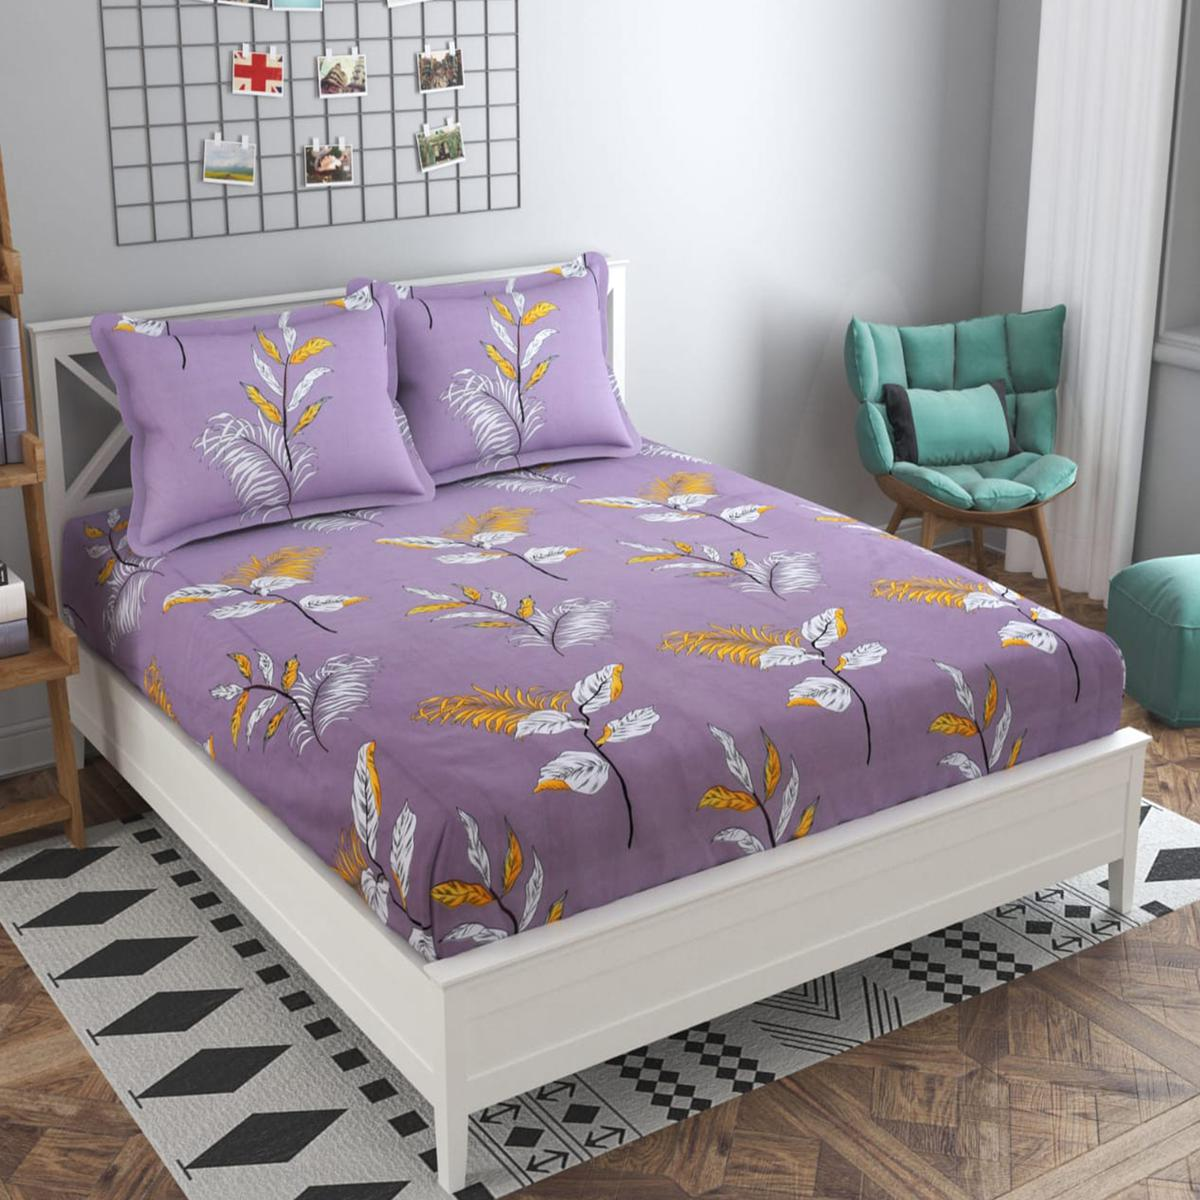 Adirav - Purple Colored Printed Glace Cotton ouble Bedsheet With 2 Pillow Cover